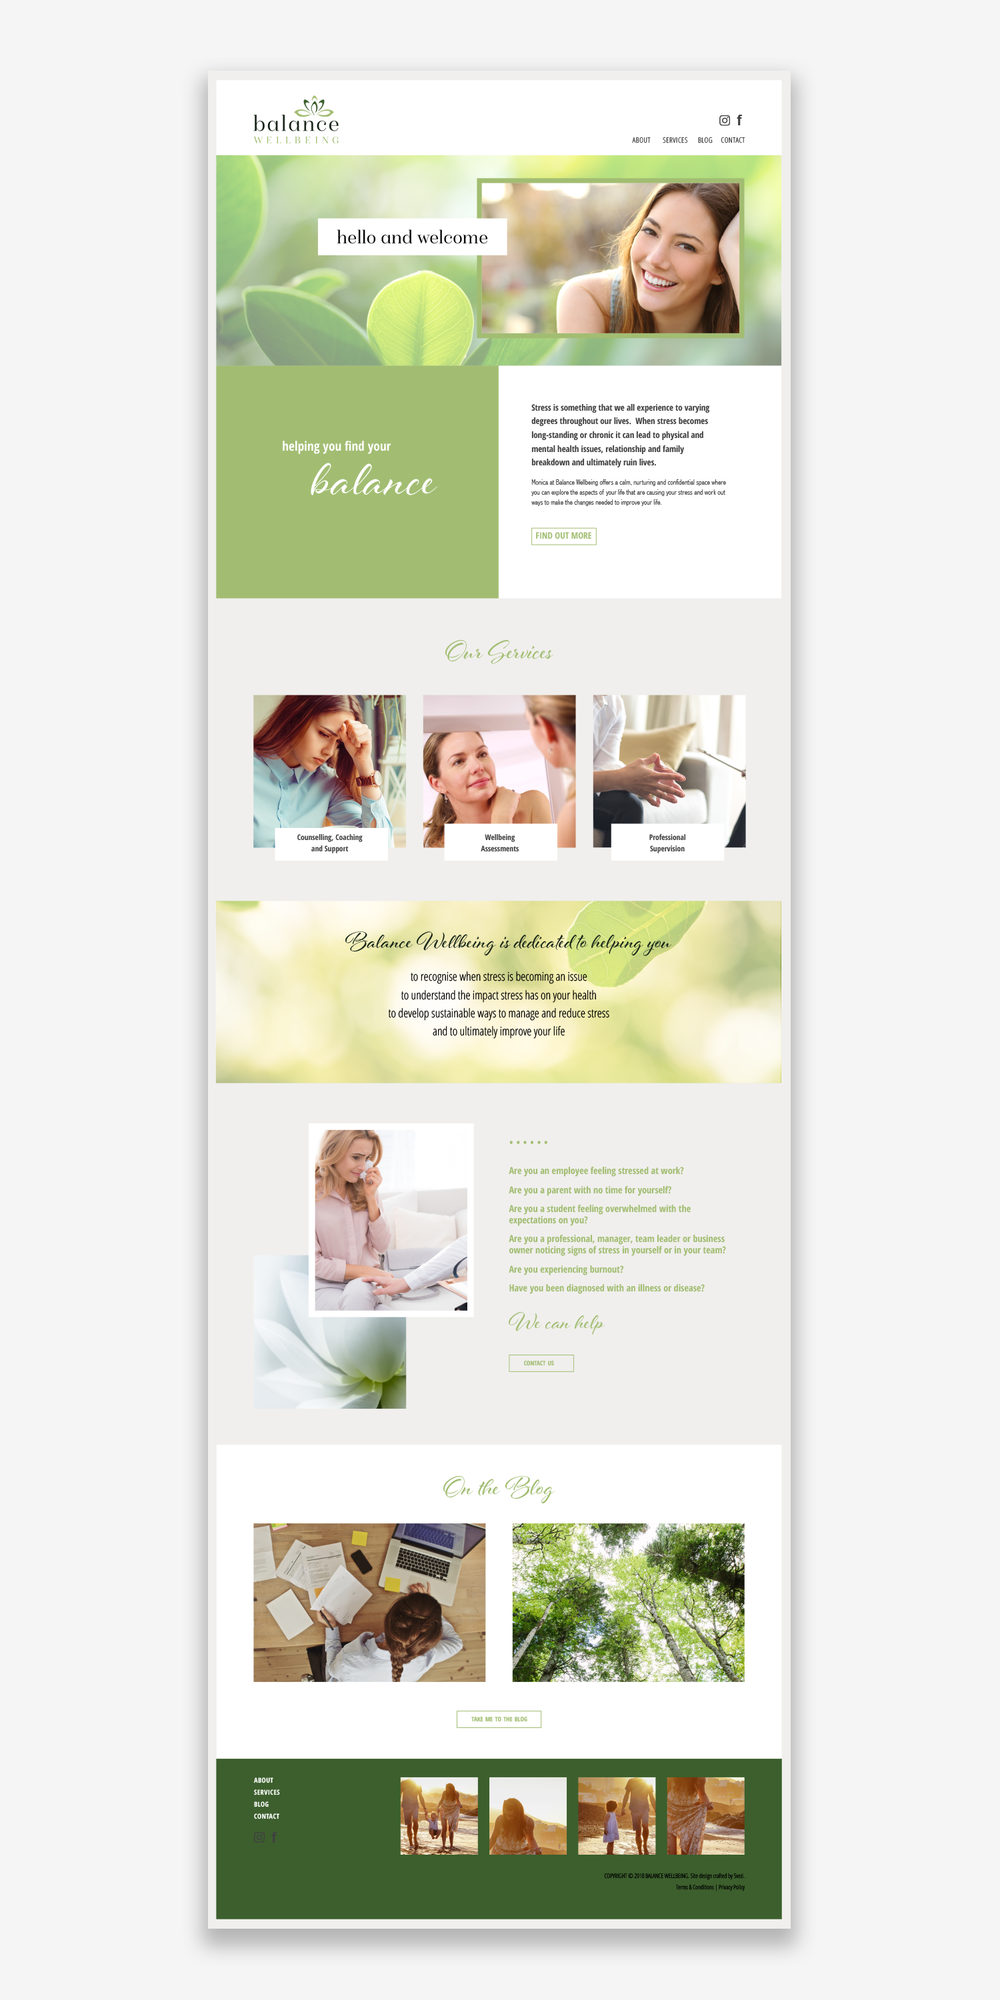 Balance Wellbeing home page template design.